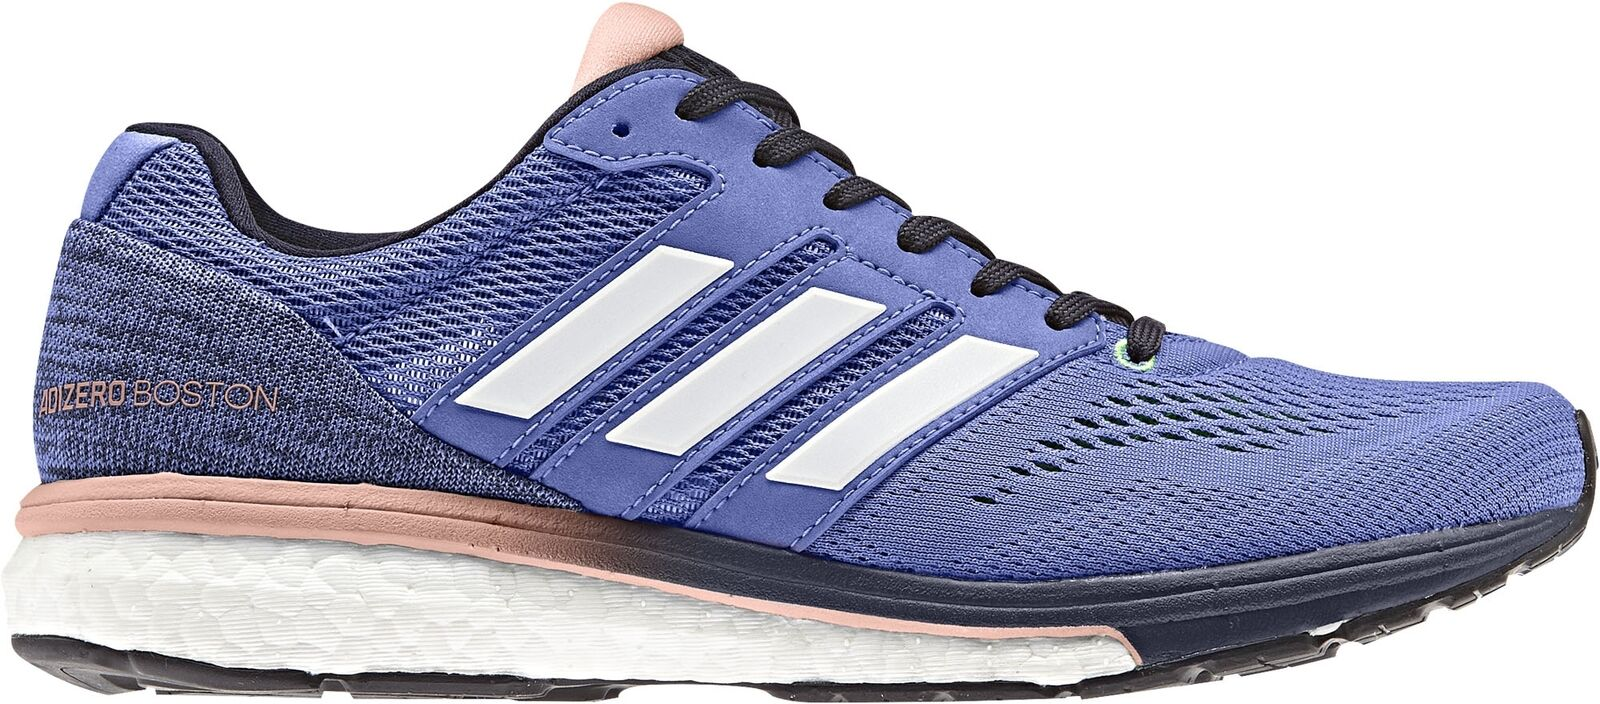 adidas Adizero Boston Boost 7 Wo  Running Shoes Trainers Trainers Trainers - Blue f9a4d2